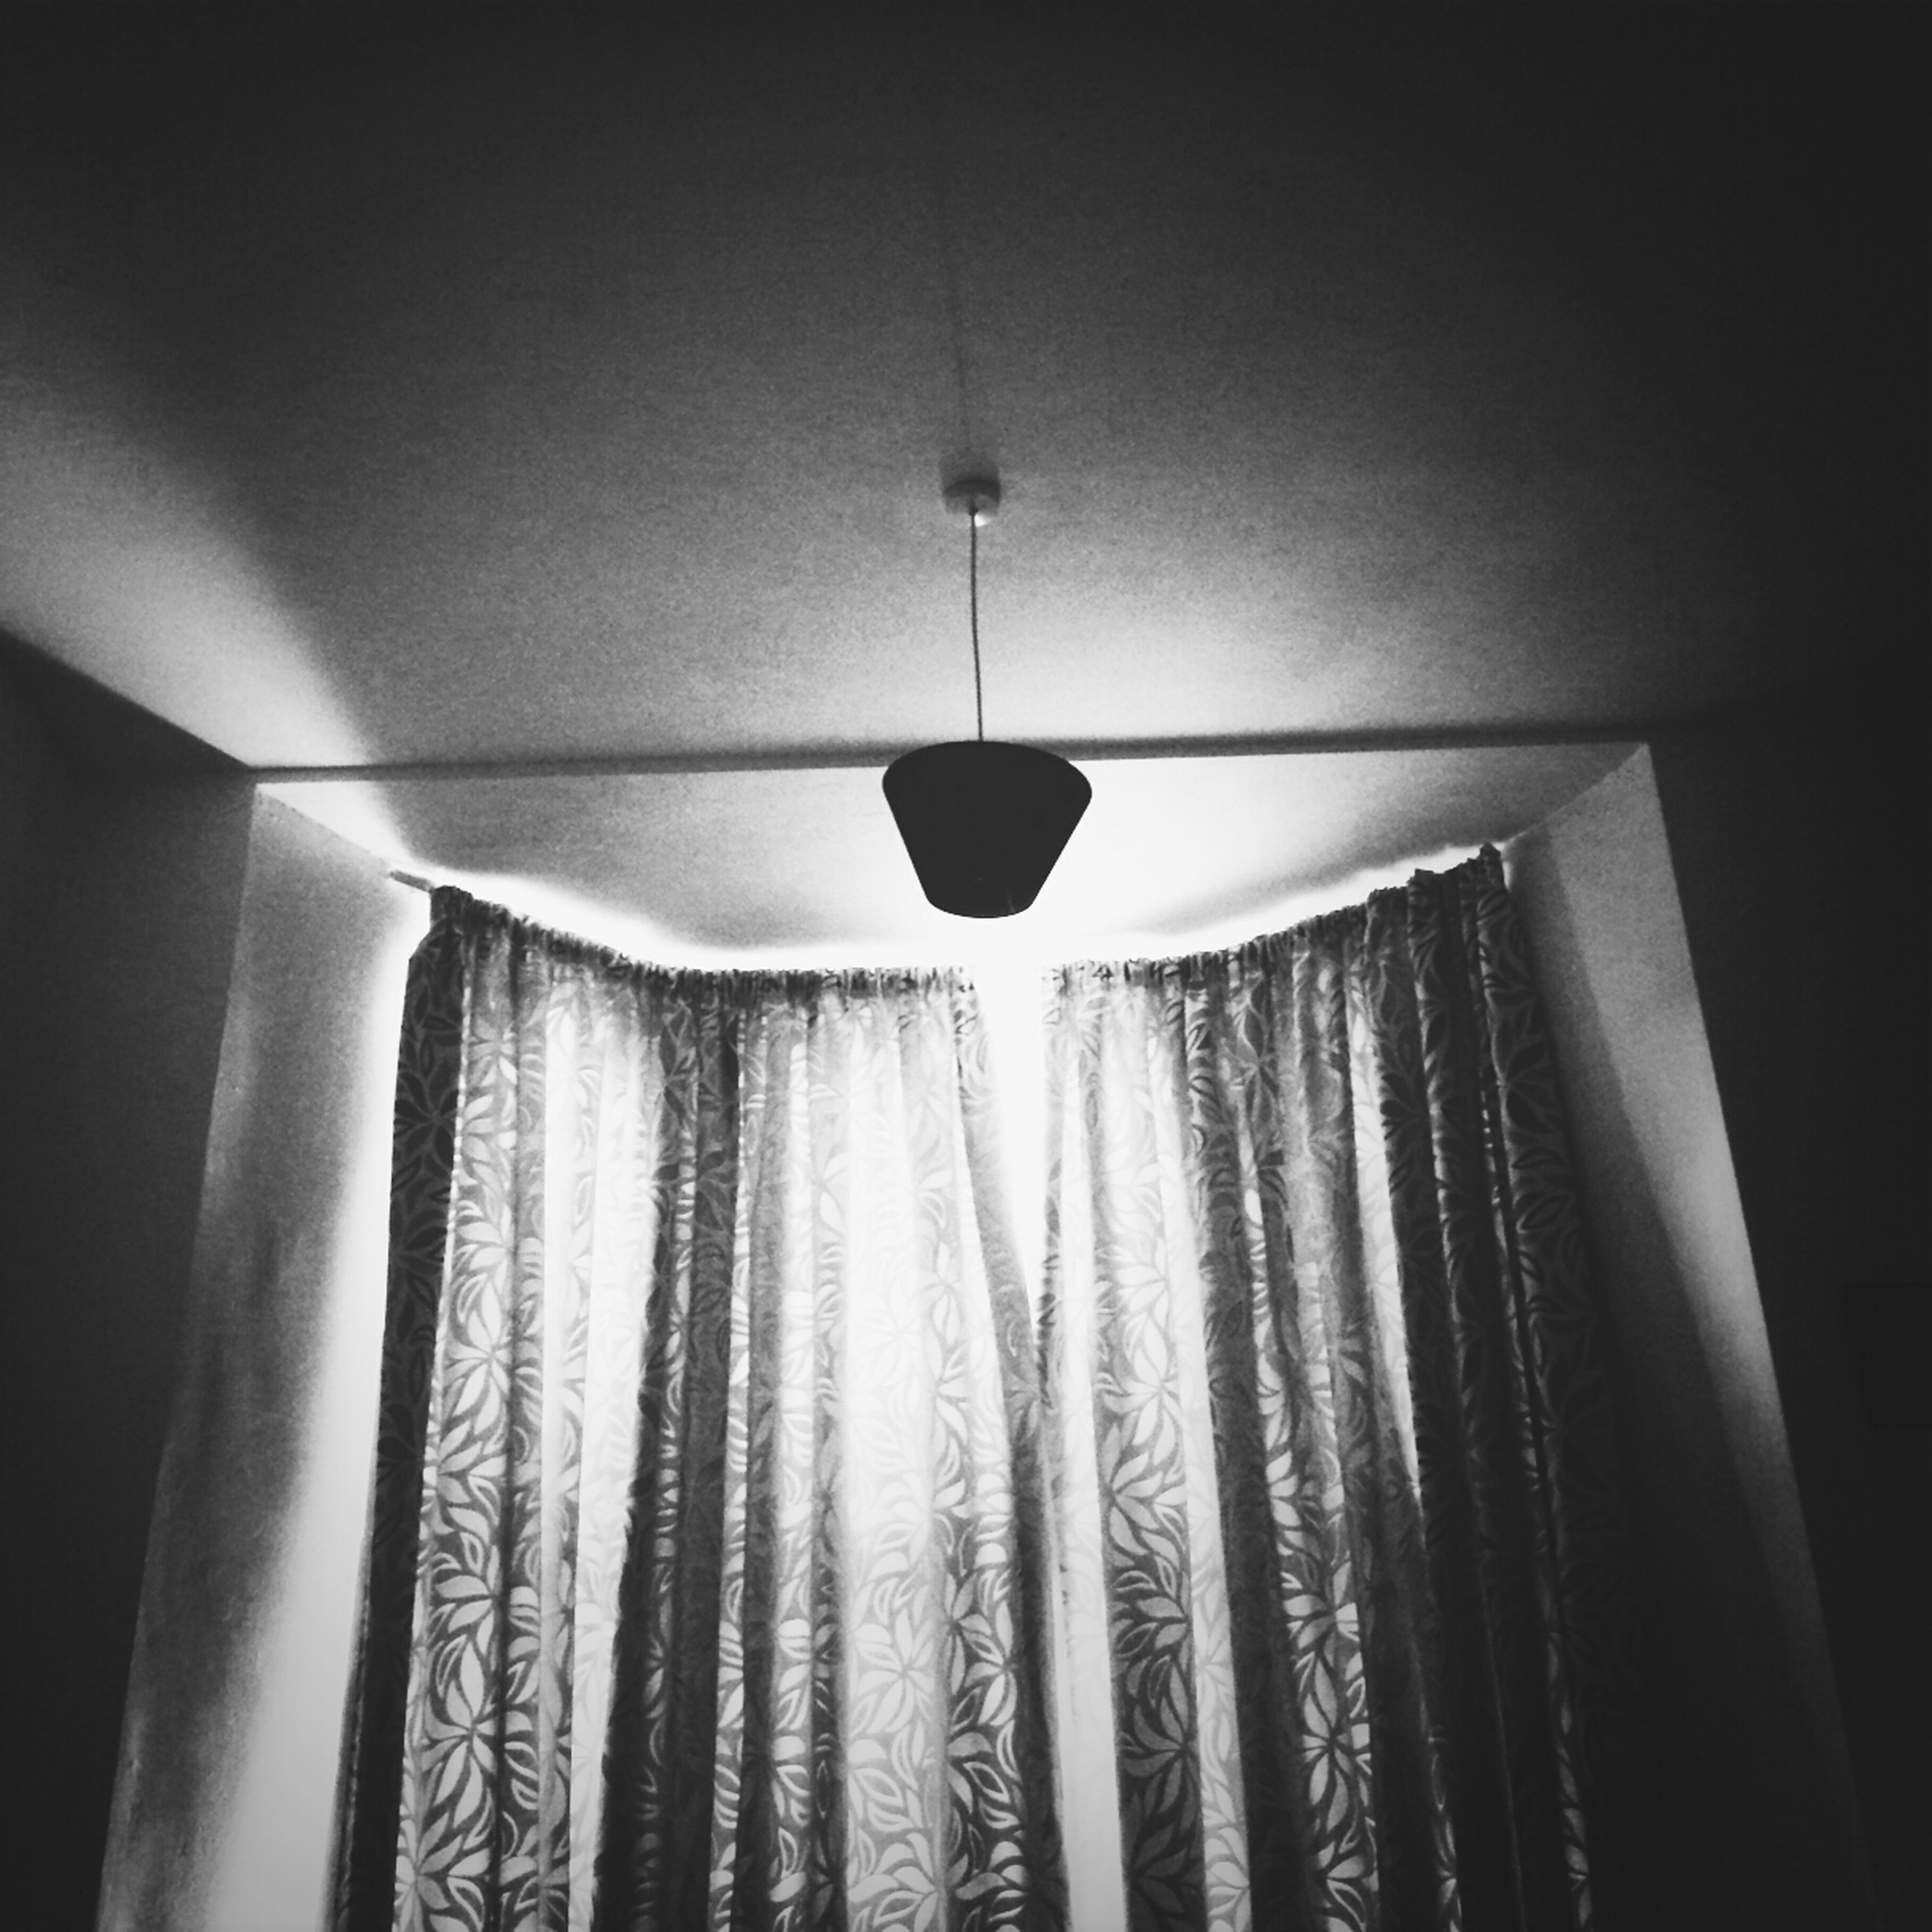 indoors, lighting equipment, ceiling, illuminated, hanging, low angle view, electricity, electric lamp, electric light, chandelier, decoration, lamp, light - natural phenomenon, light bulb, decor, home interior, glowing, pendant light, no people, wall - building feature